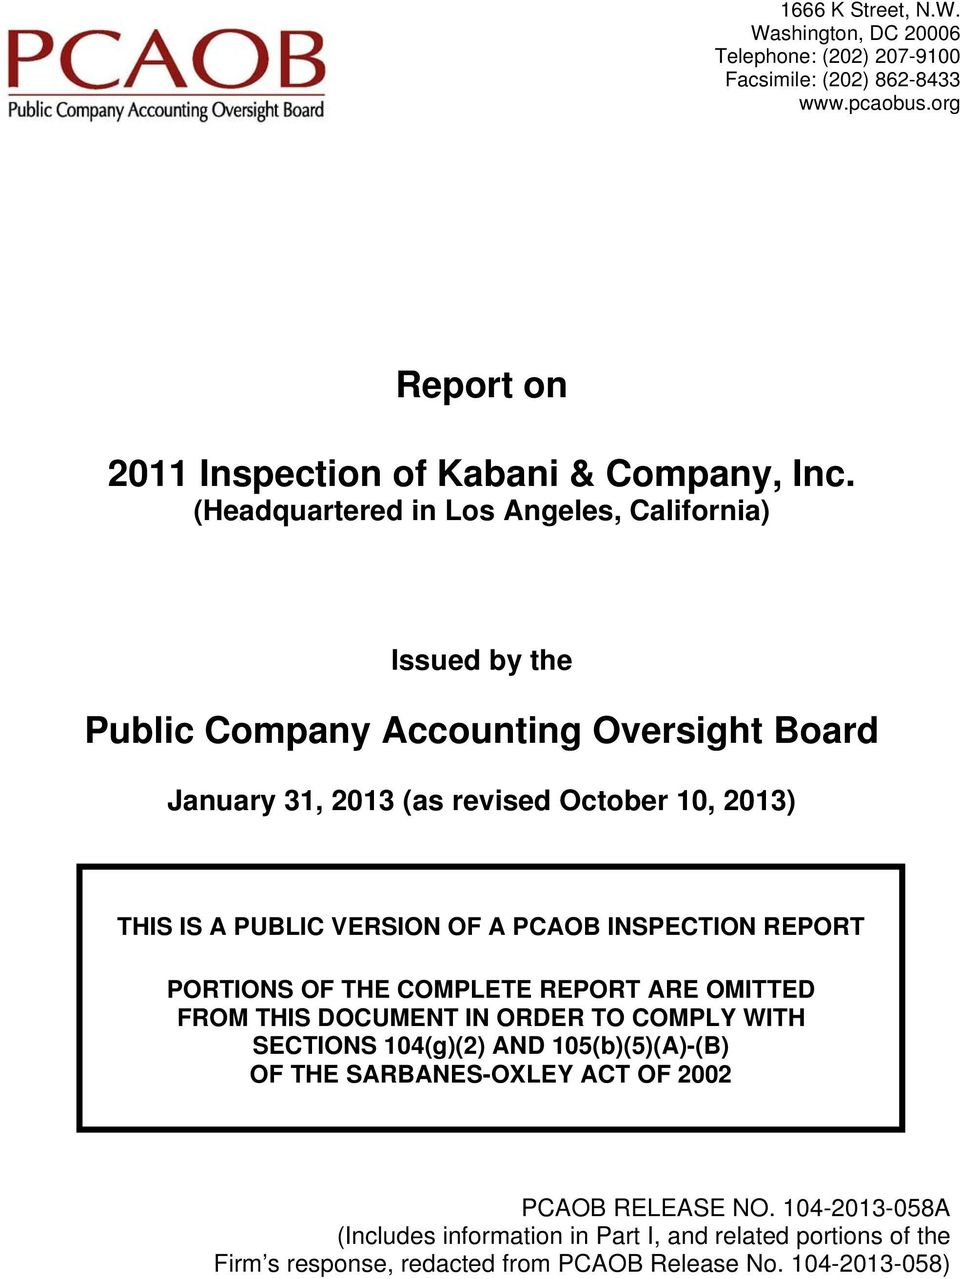 VERSION OF A PCAOB INSPECTION REPORT PORTIONS OF THE COMPLETE REPORT ARE OMITTED FROM THIS DOCUMENT IN ORDER TO COMPLY WITH SECTIONS 104(g)(2) AND 105(b)(5)(A)-(B) OF